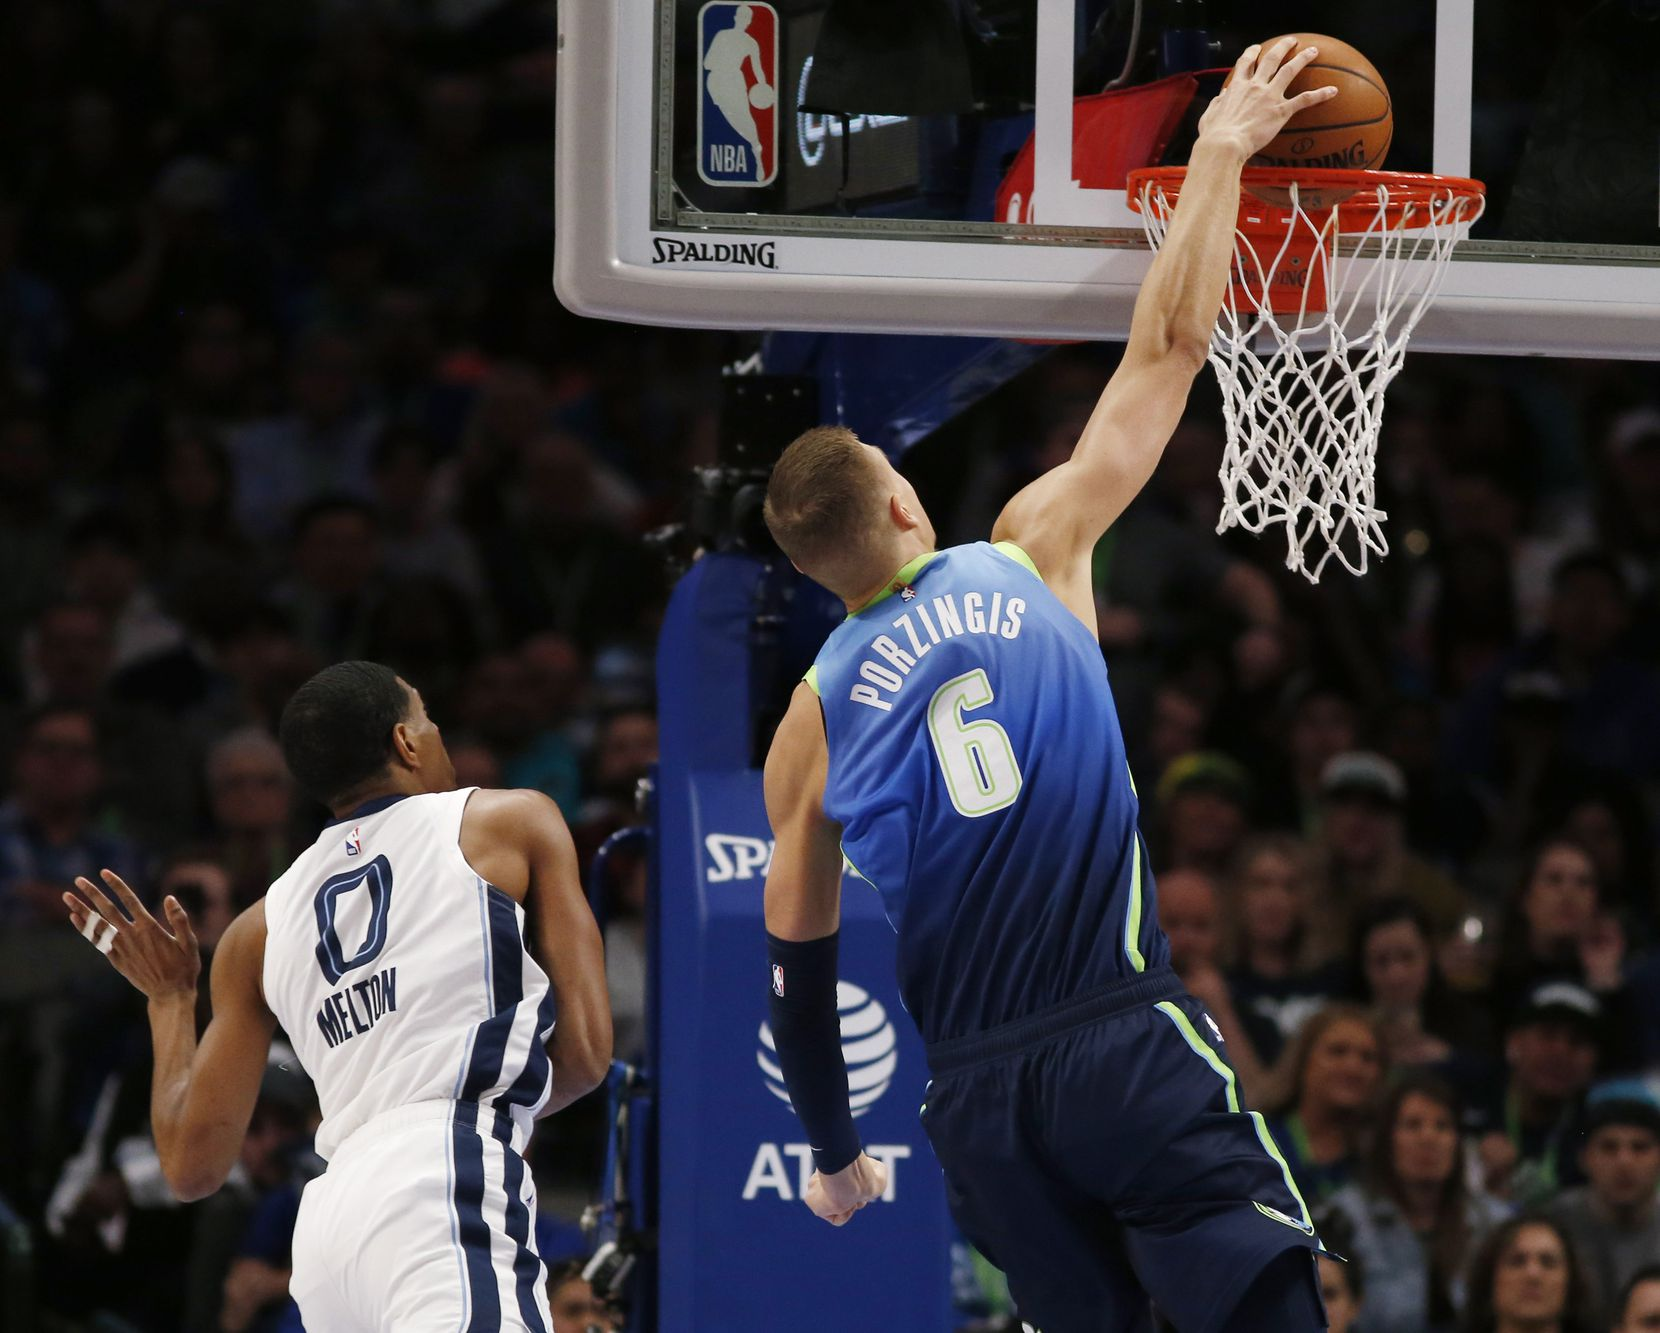 Dallas Mavericks forward Kristaps Porzingis (6) dunks the ball in front of Memphis Grizzlies guard De'Anthony Melton (0) during the first half of play at American Airlines Center in Dallas on Friday, March 6, 2020.